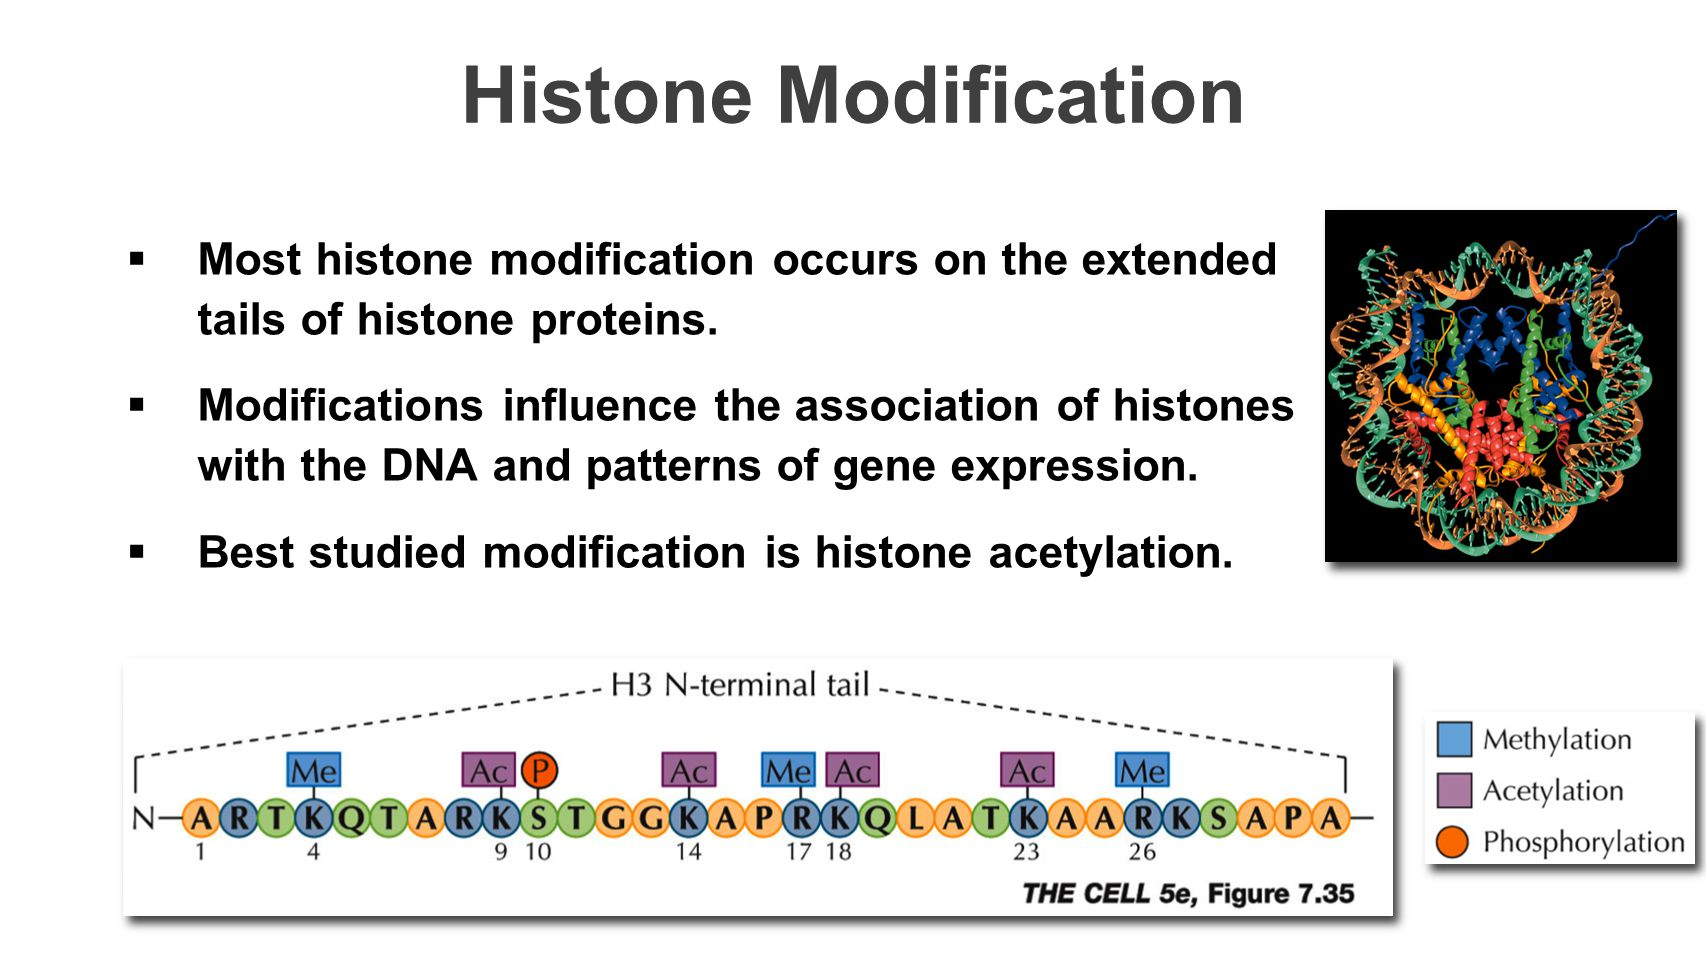 Histone Modification Most histone modification occurs on the extended tails of histone proteins.